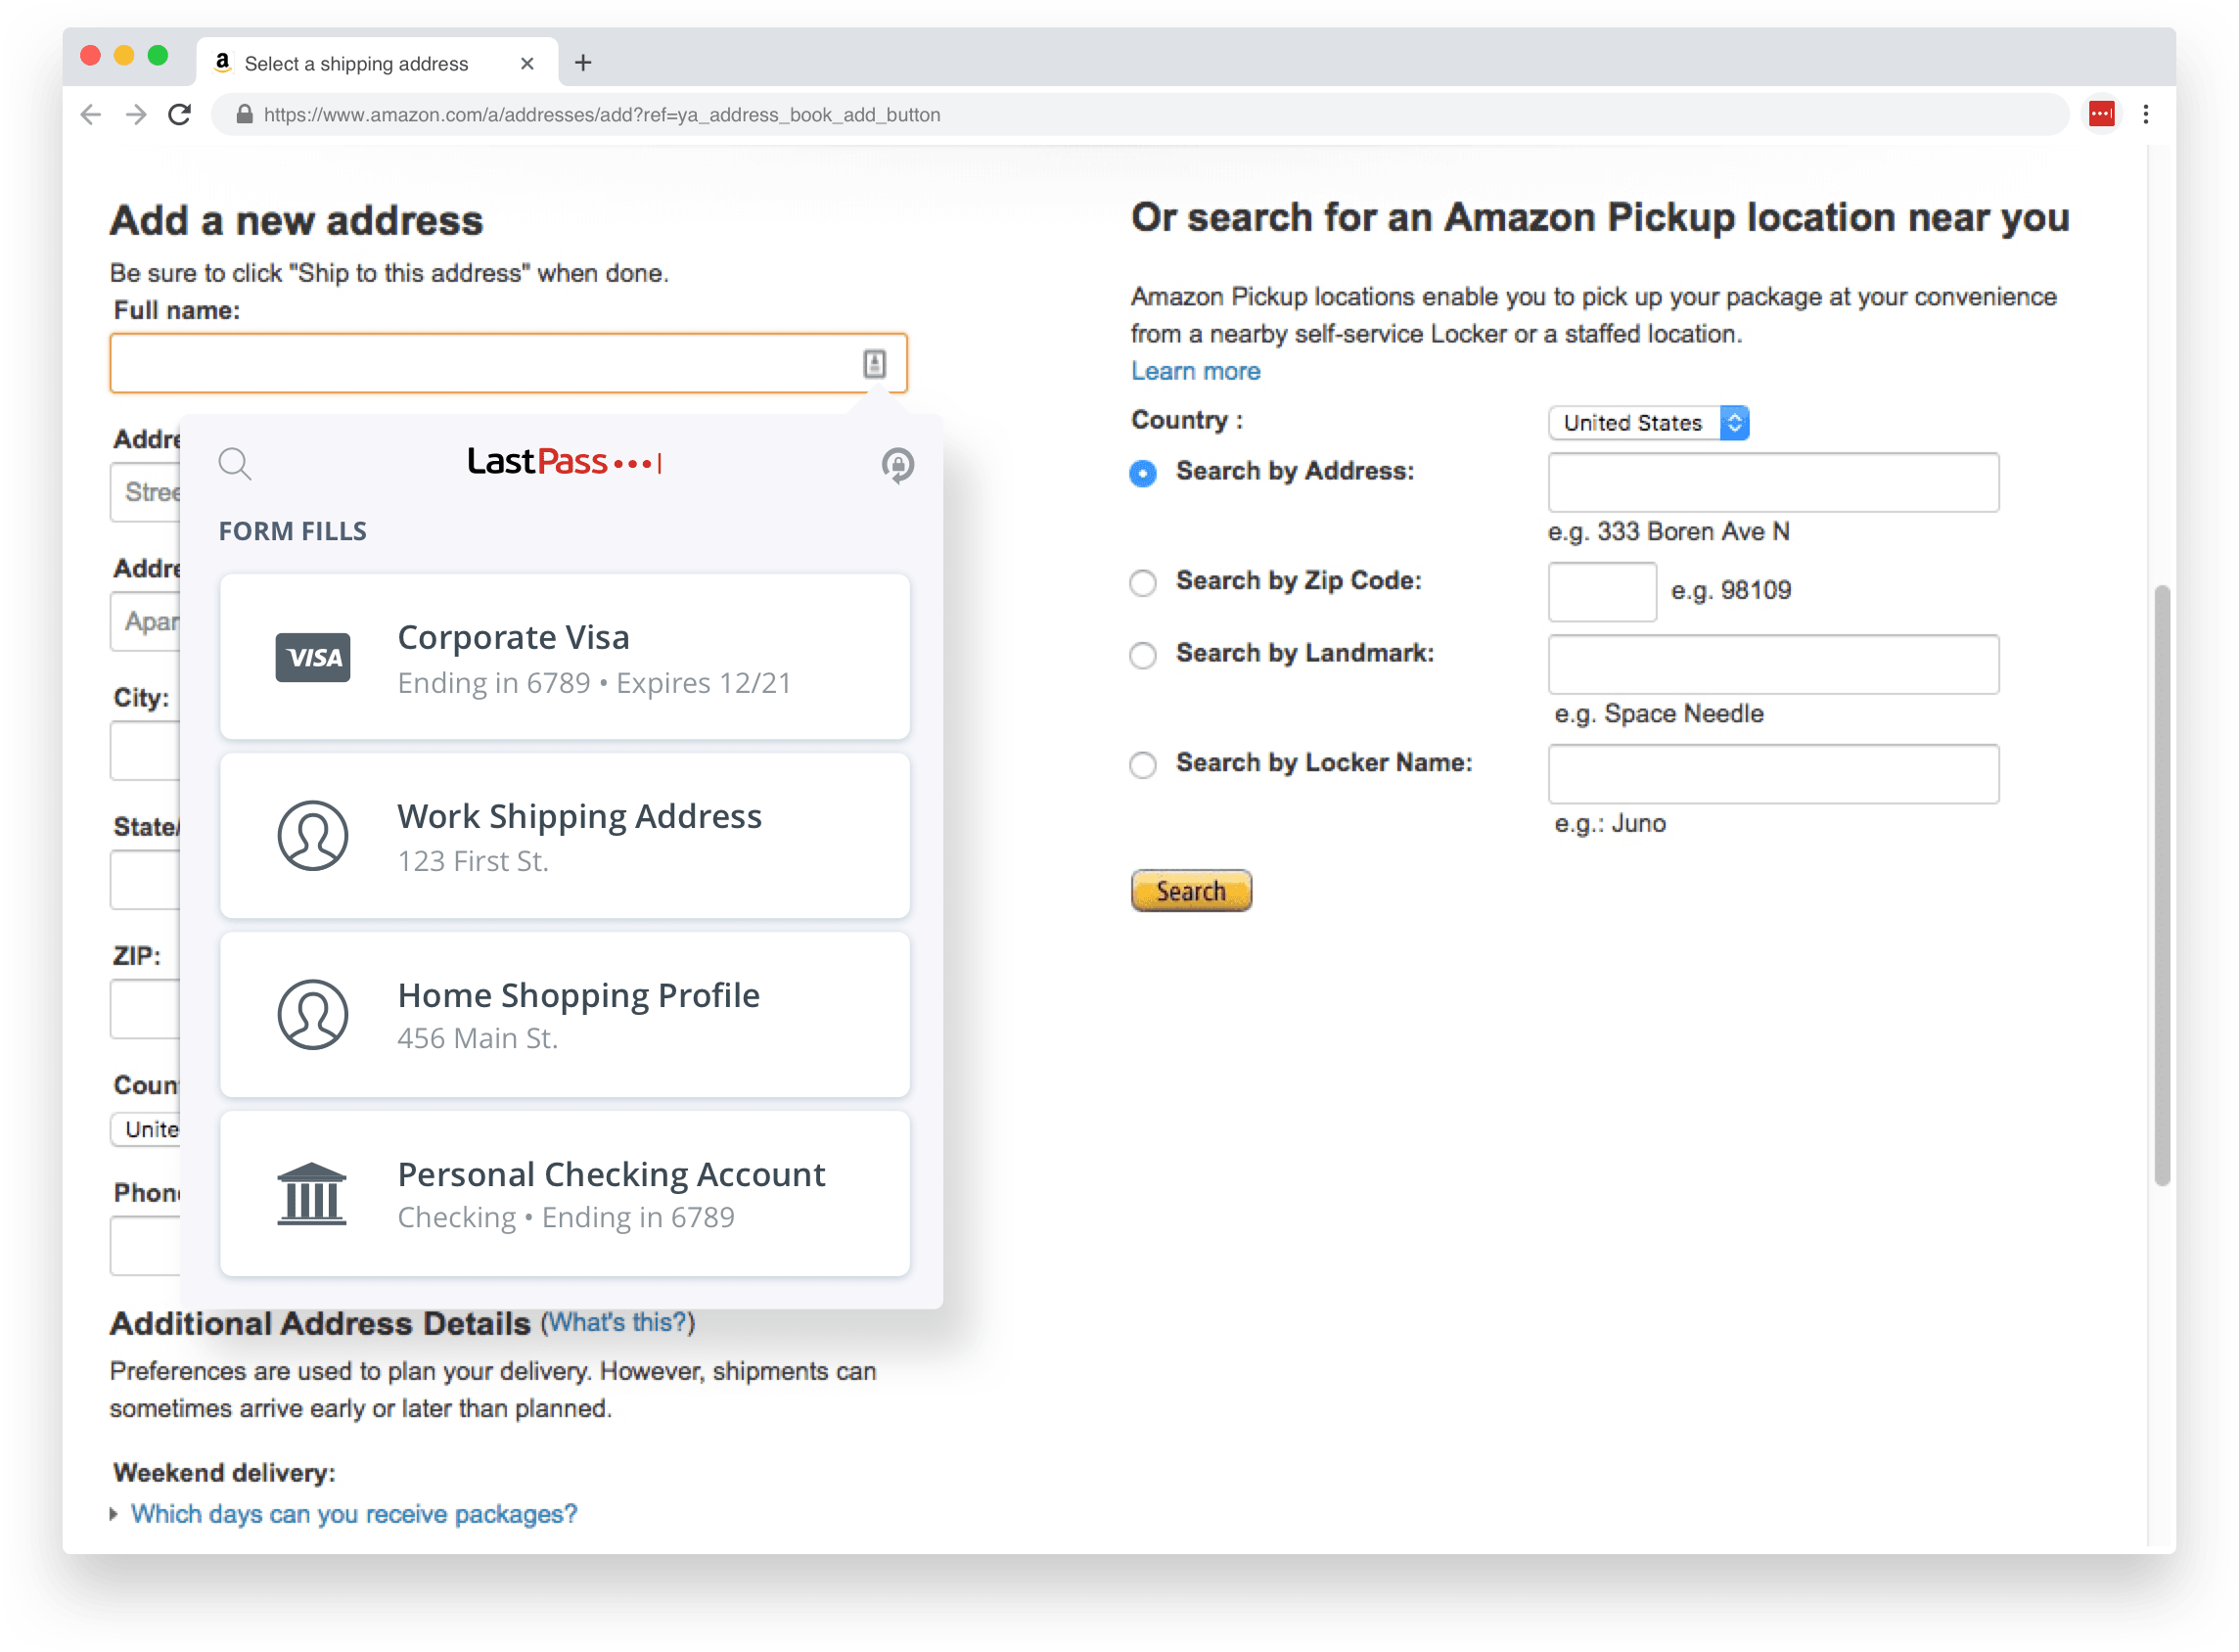 Using autofill to complete a shipping address form.